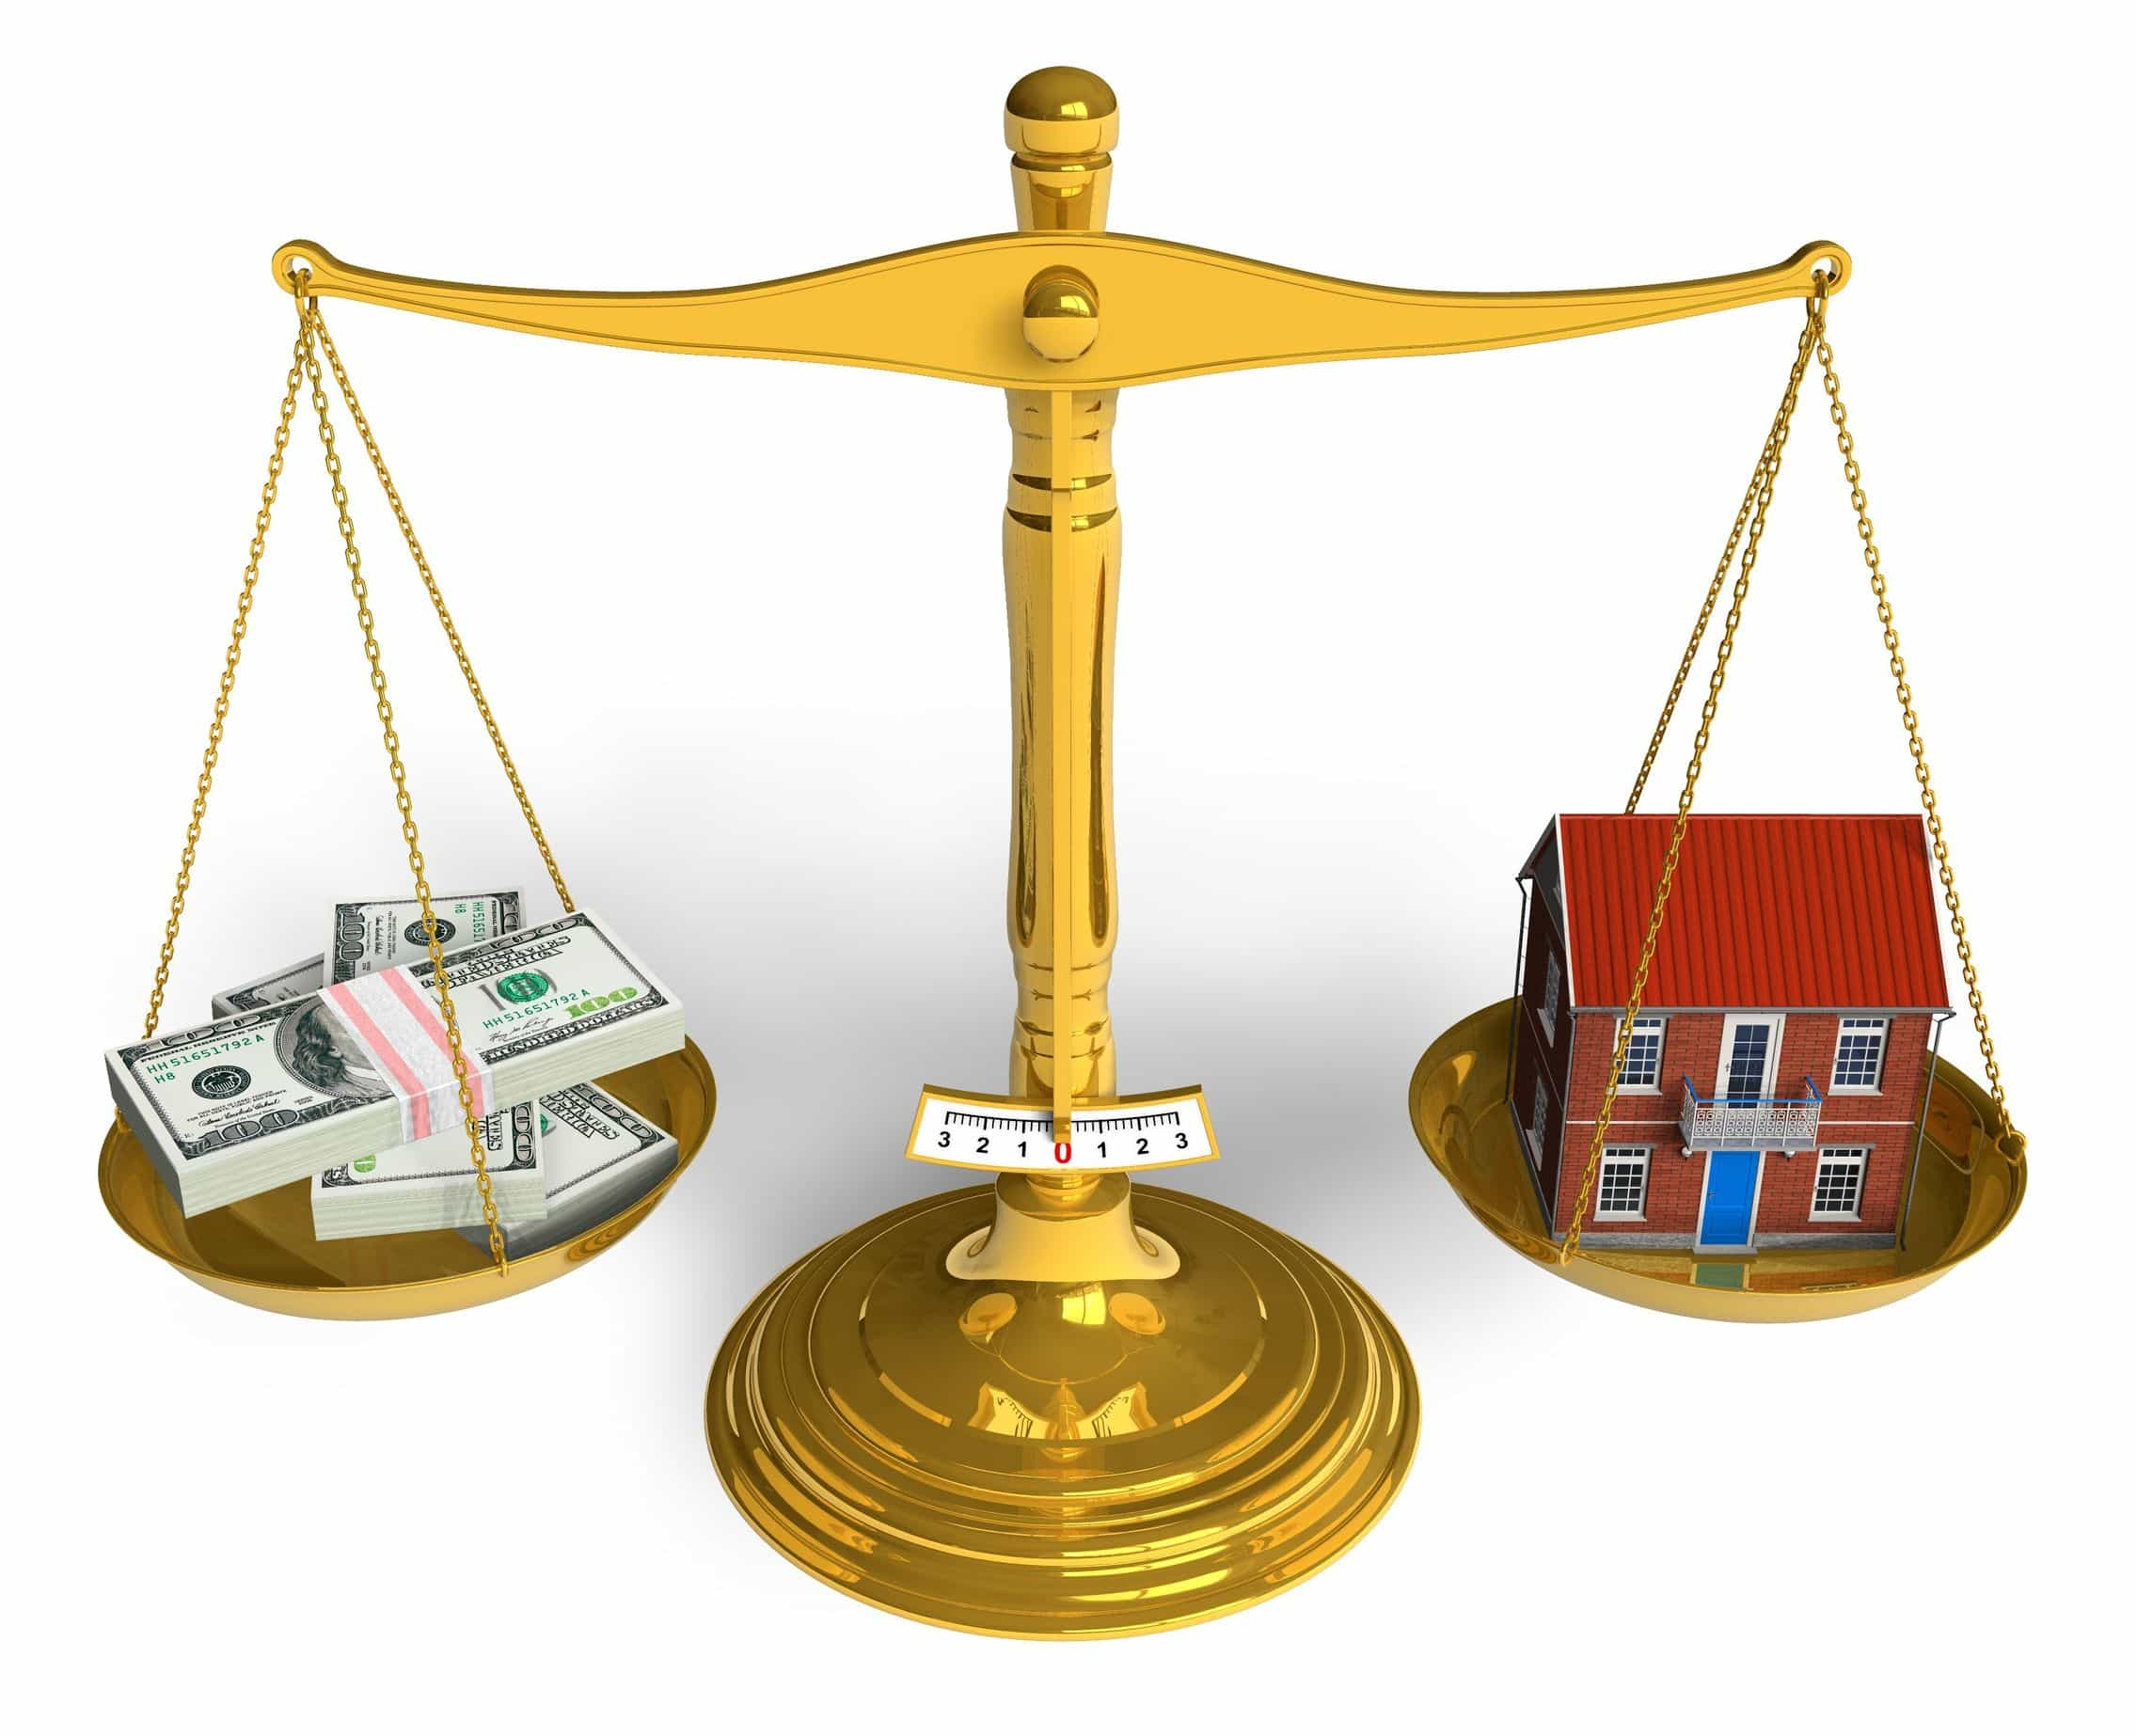 image of scales with home and cash